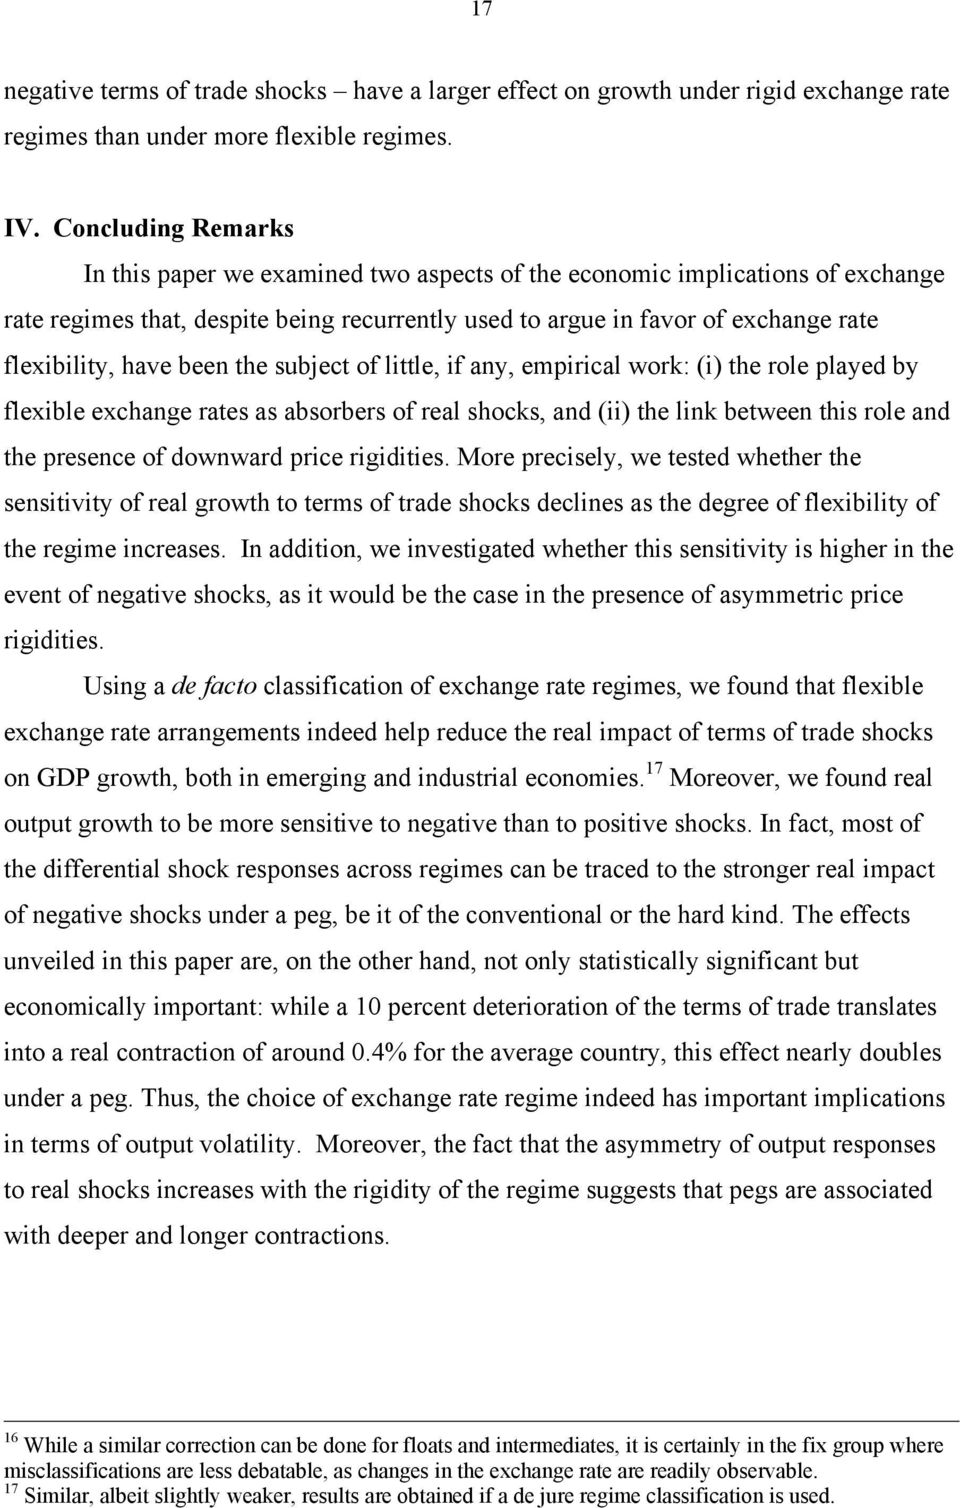 have been the subject of little, if any, empirical work: (i) the role played by flexible exchange rates as absorbers of real shocks, and (ii) the link between this role and the presence of downward